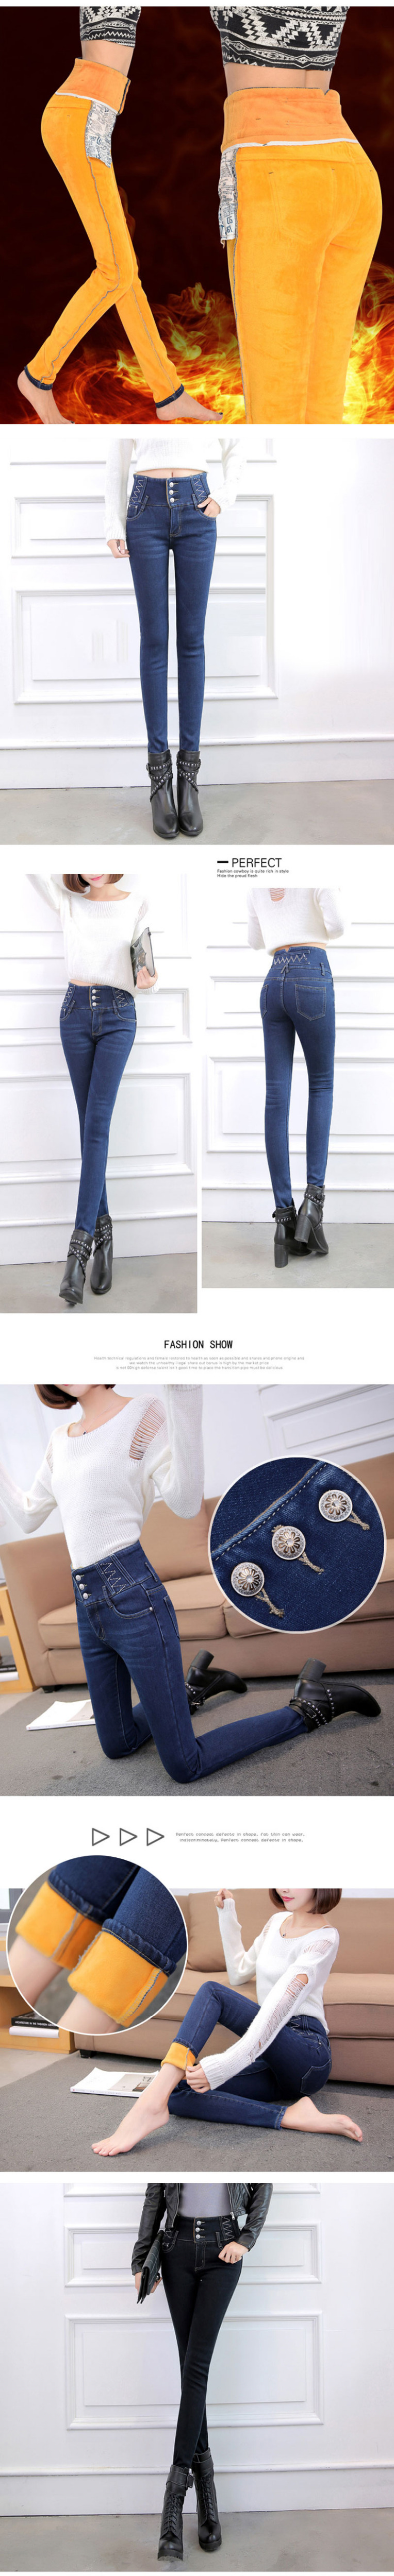 The-new-show-female-foot-tall-waist-jeans-height-pants-with-velvet-elastic-cultivate-one's-morality_01